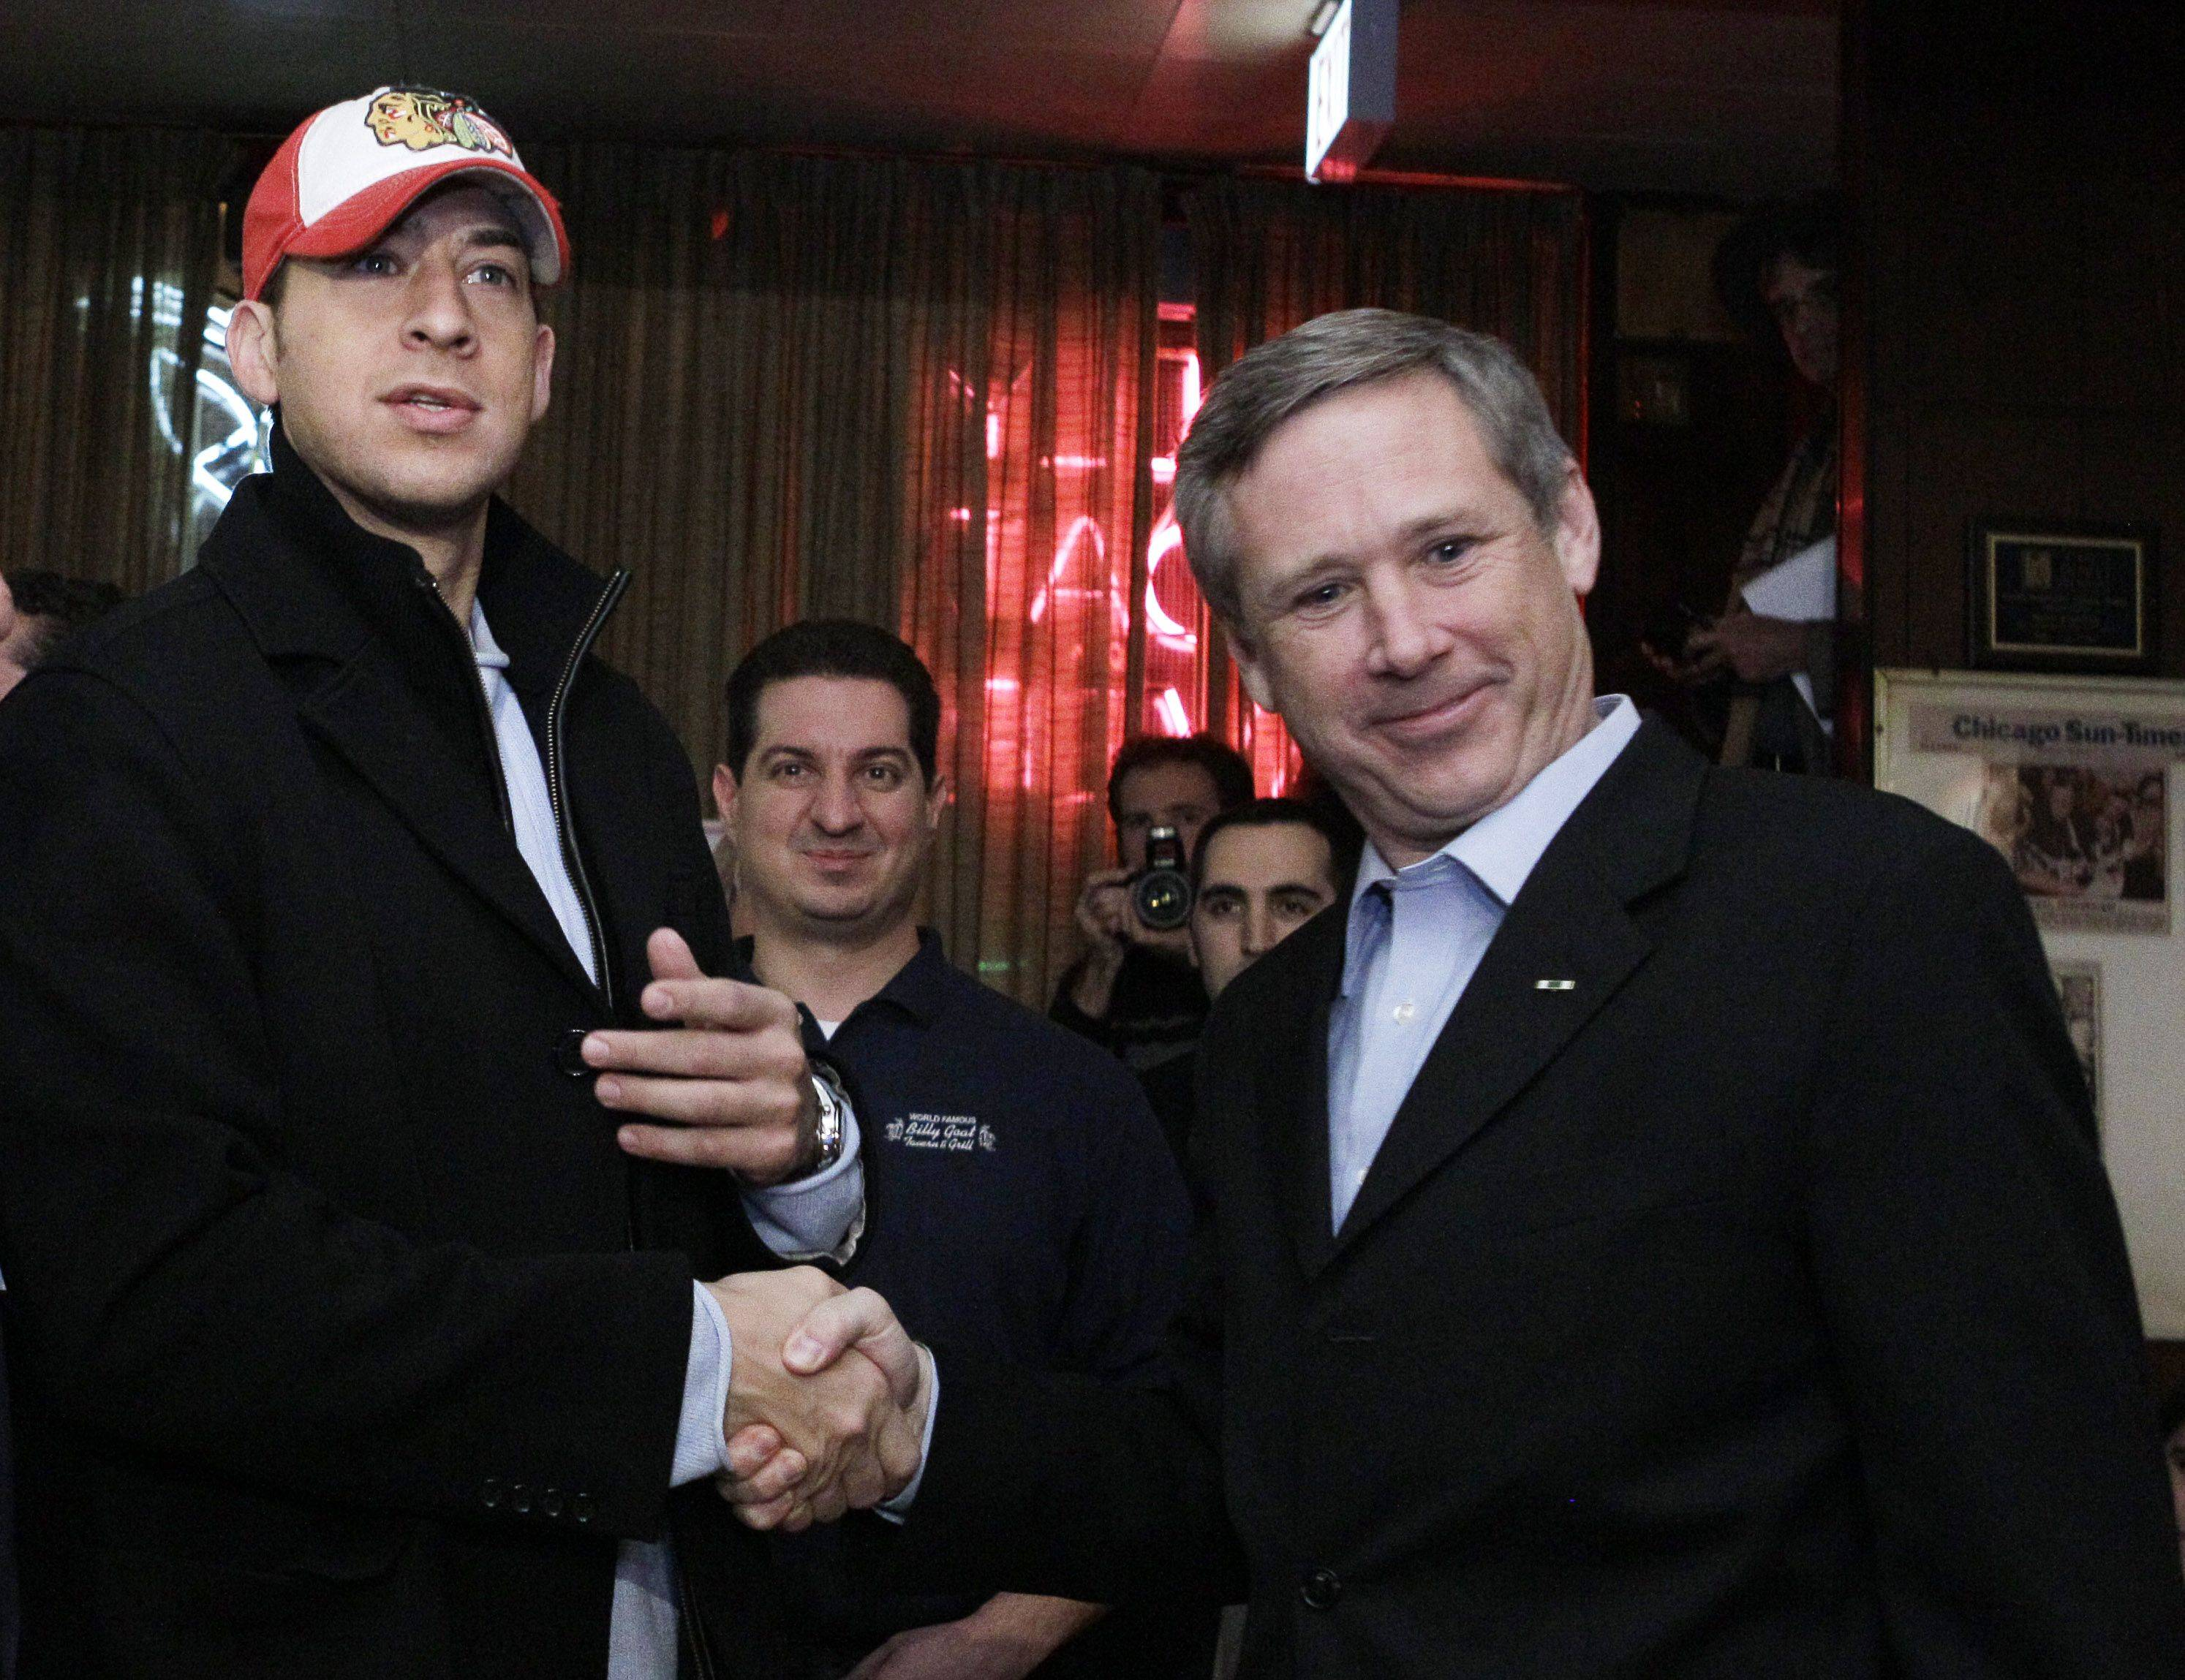 U.S. Senator-elect Republican Mark Kirk, right, and his Democratic opponent Alexi Giannoulias, have a beer at the famed Billy Goat Tavern Wednesday.